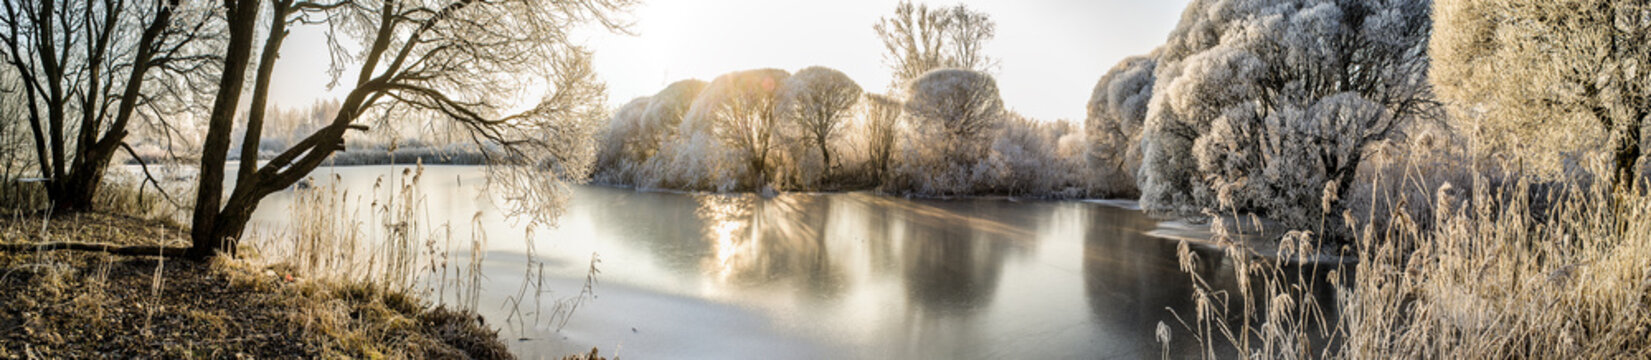 Panorama of the frozen lake and snow-covered trees